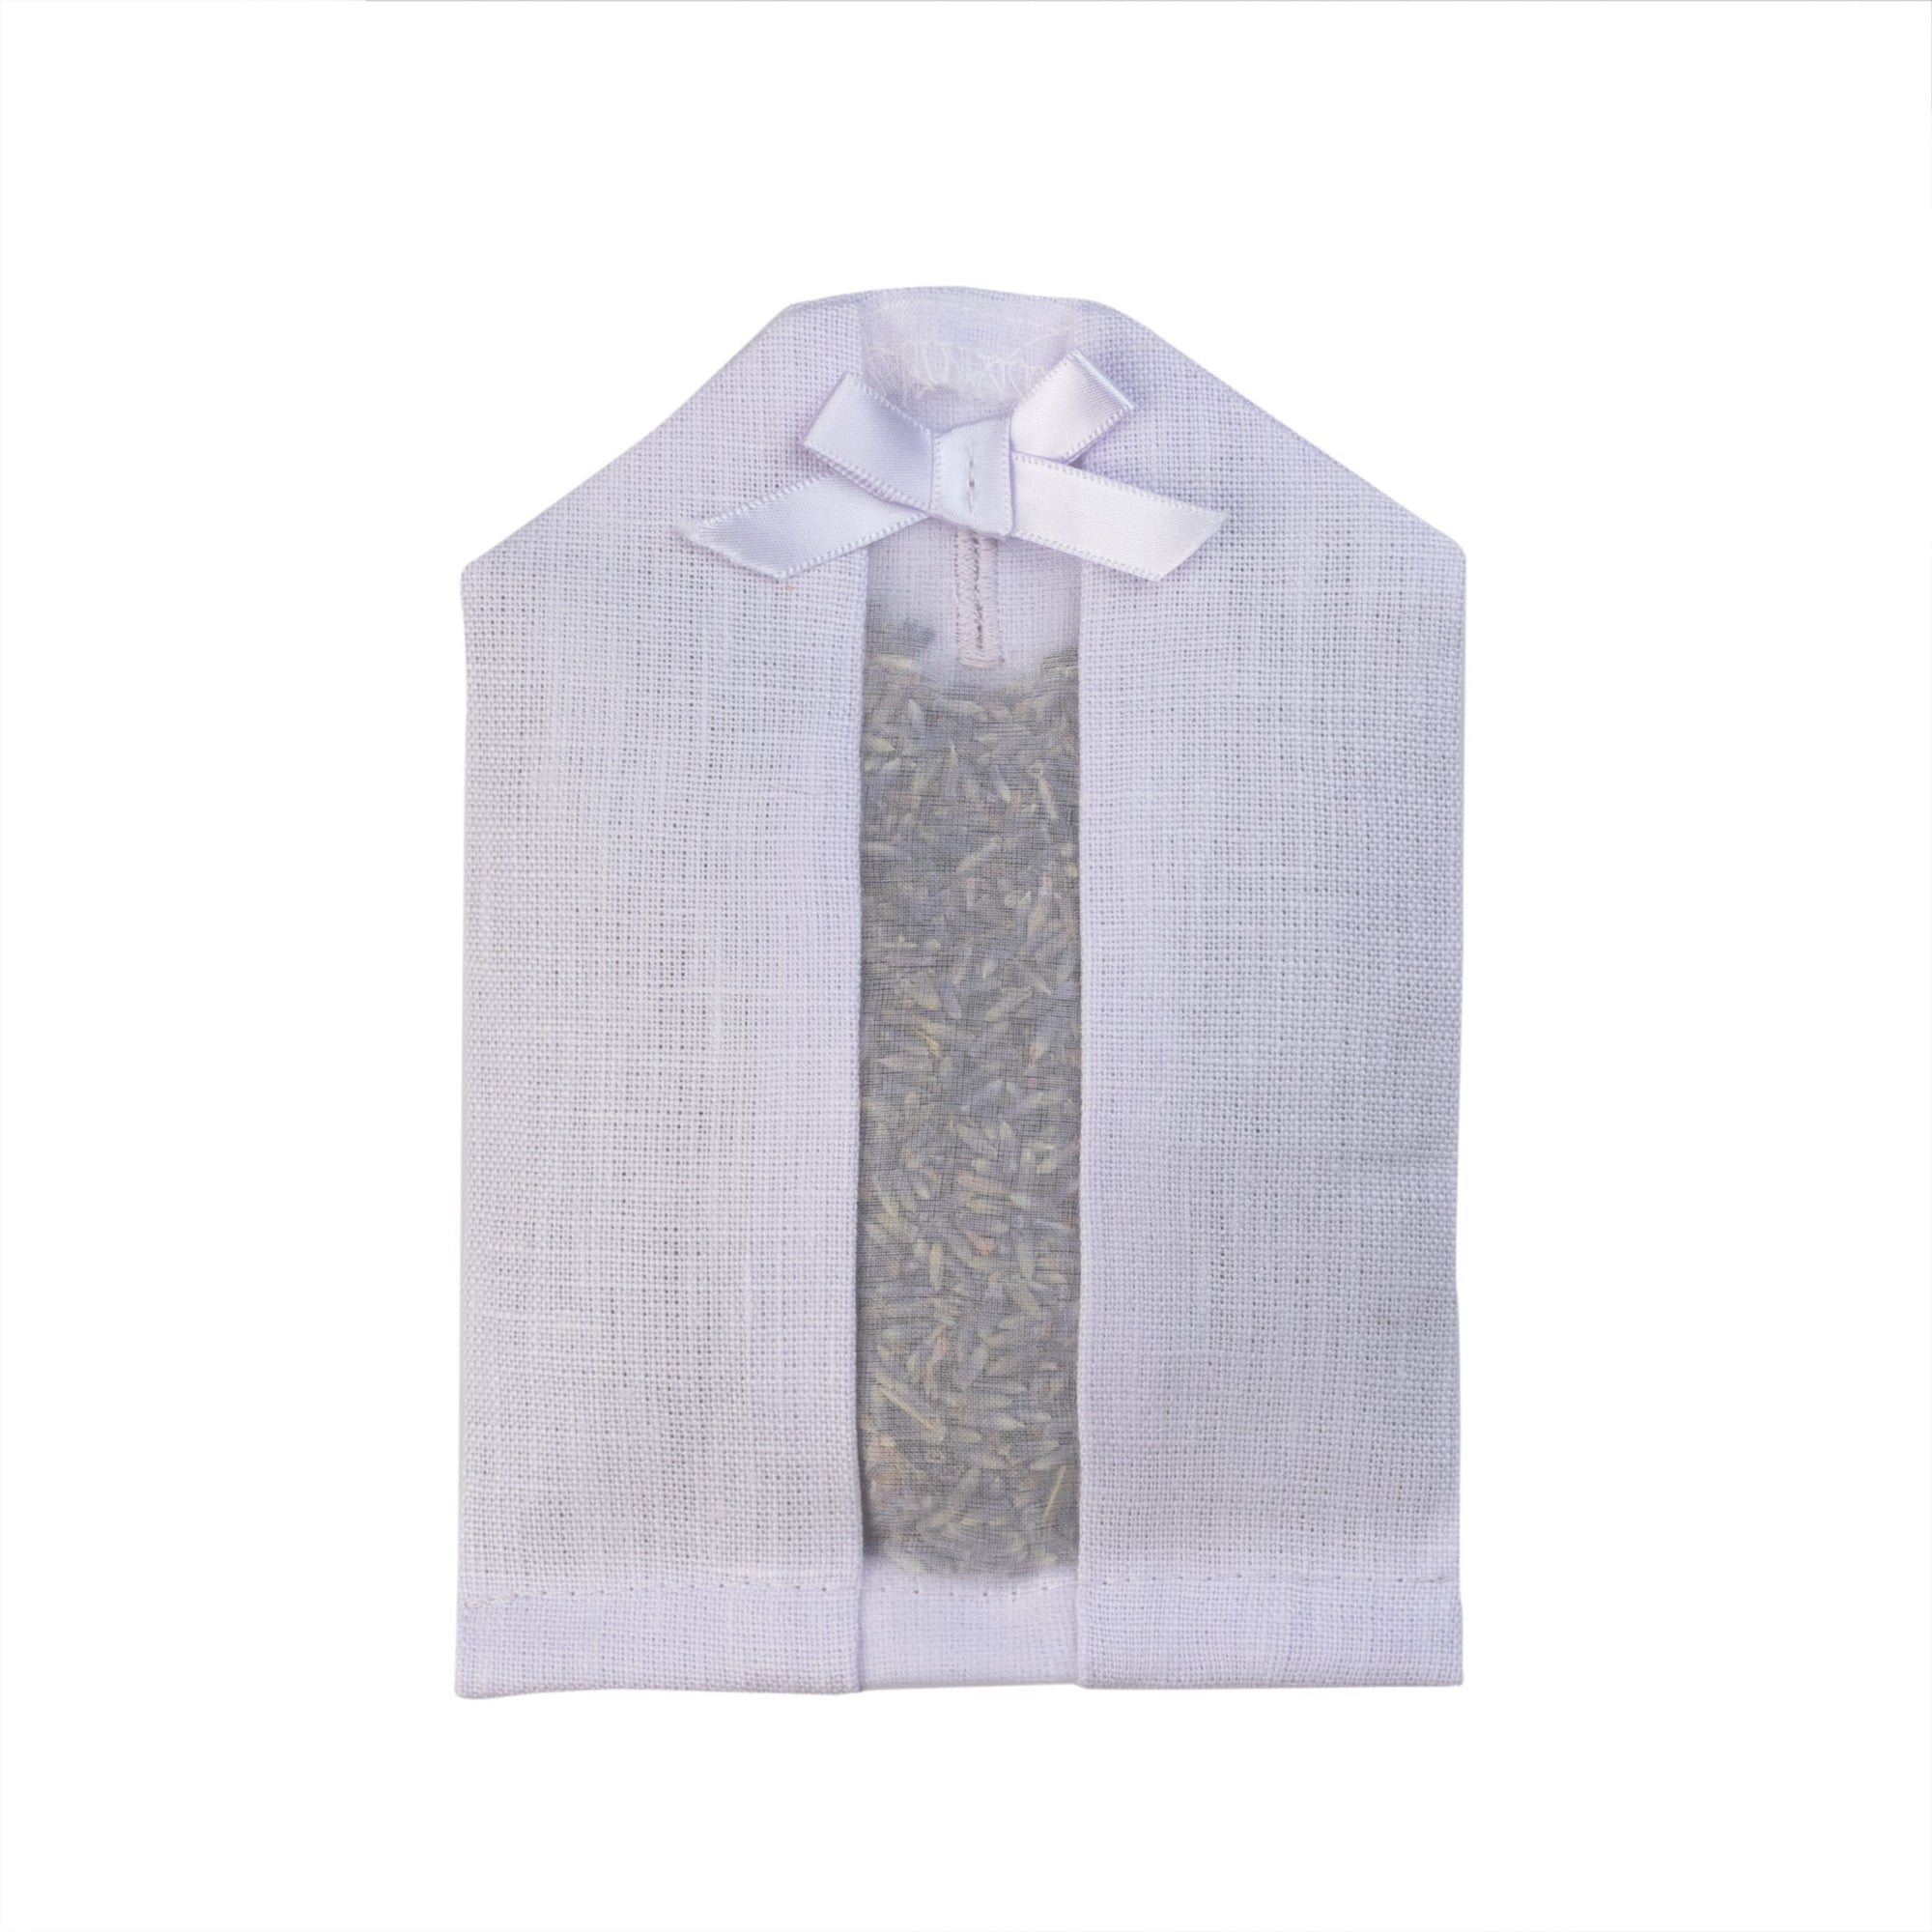 Lavender filled inside of a purple linen hanger sachet